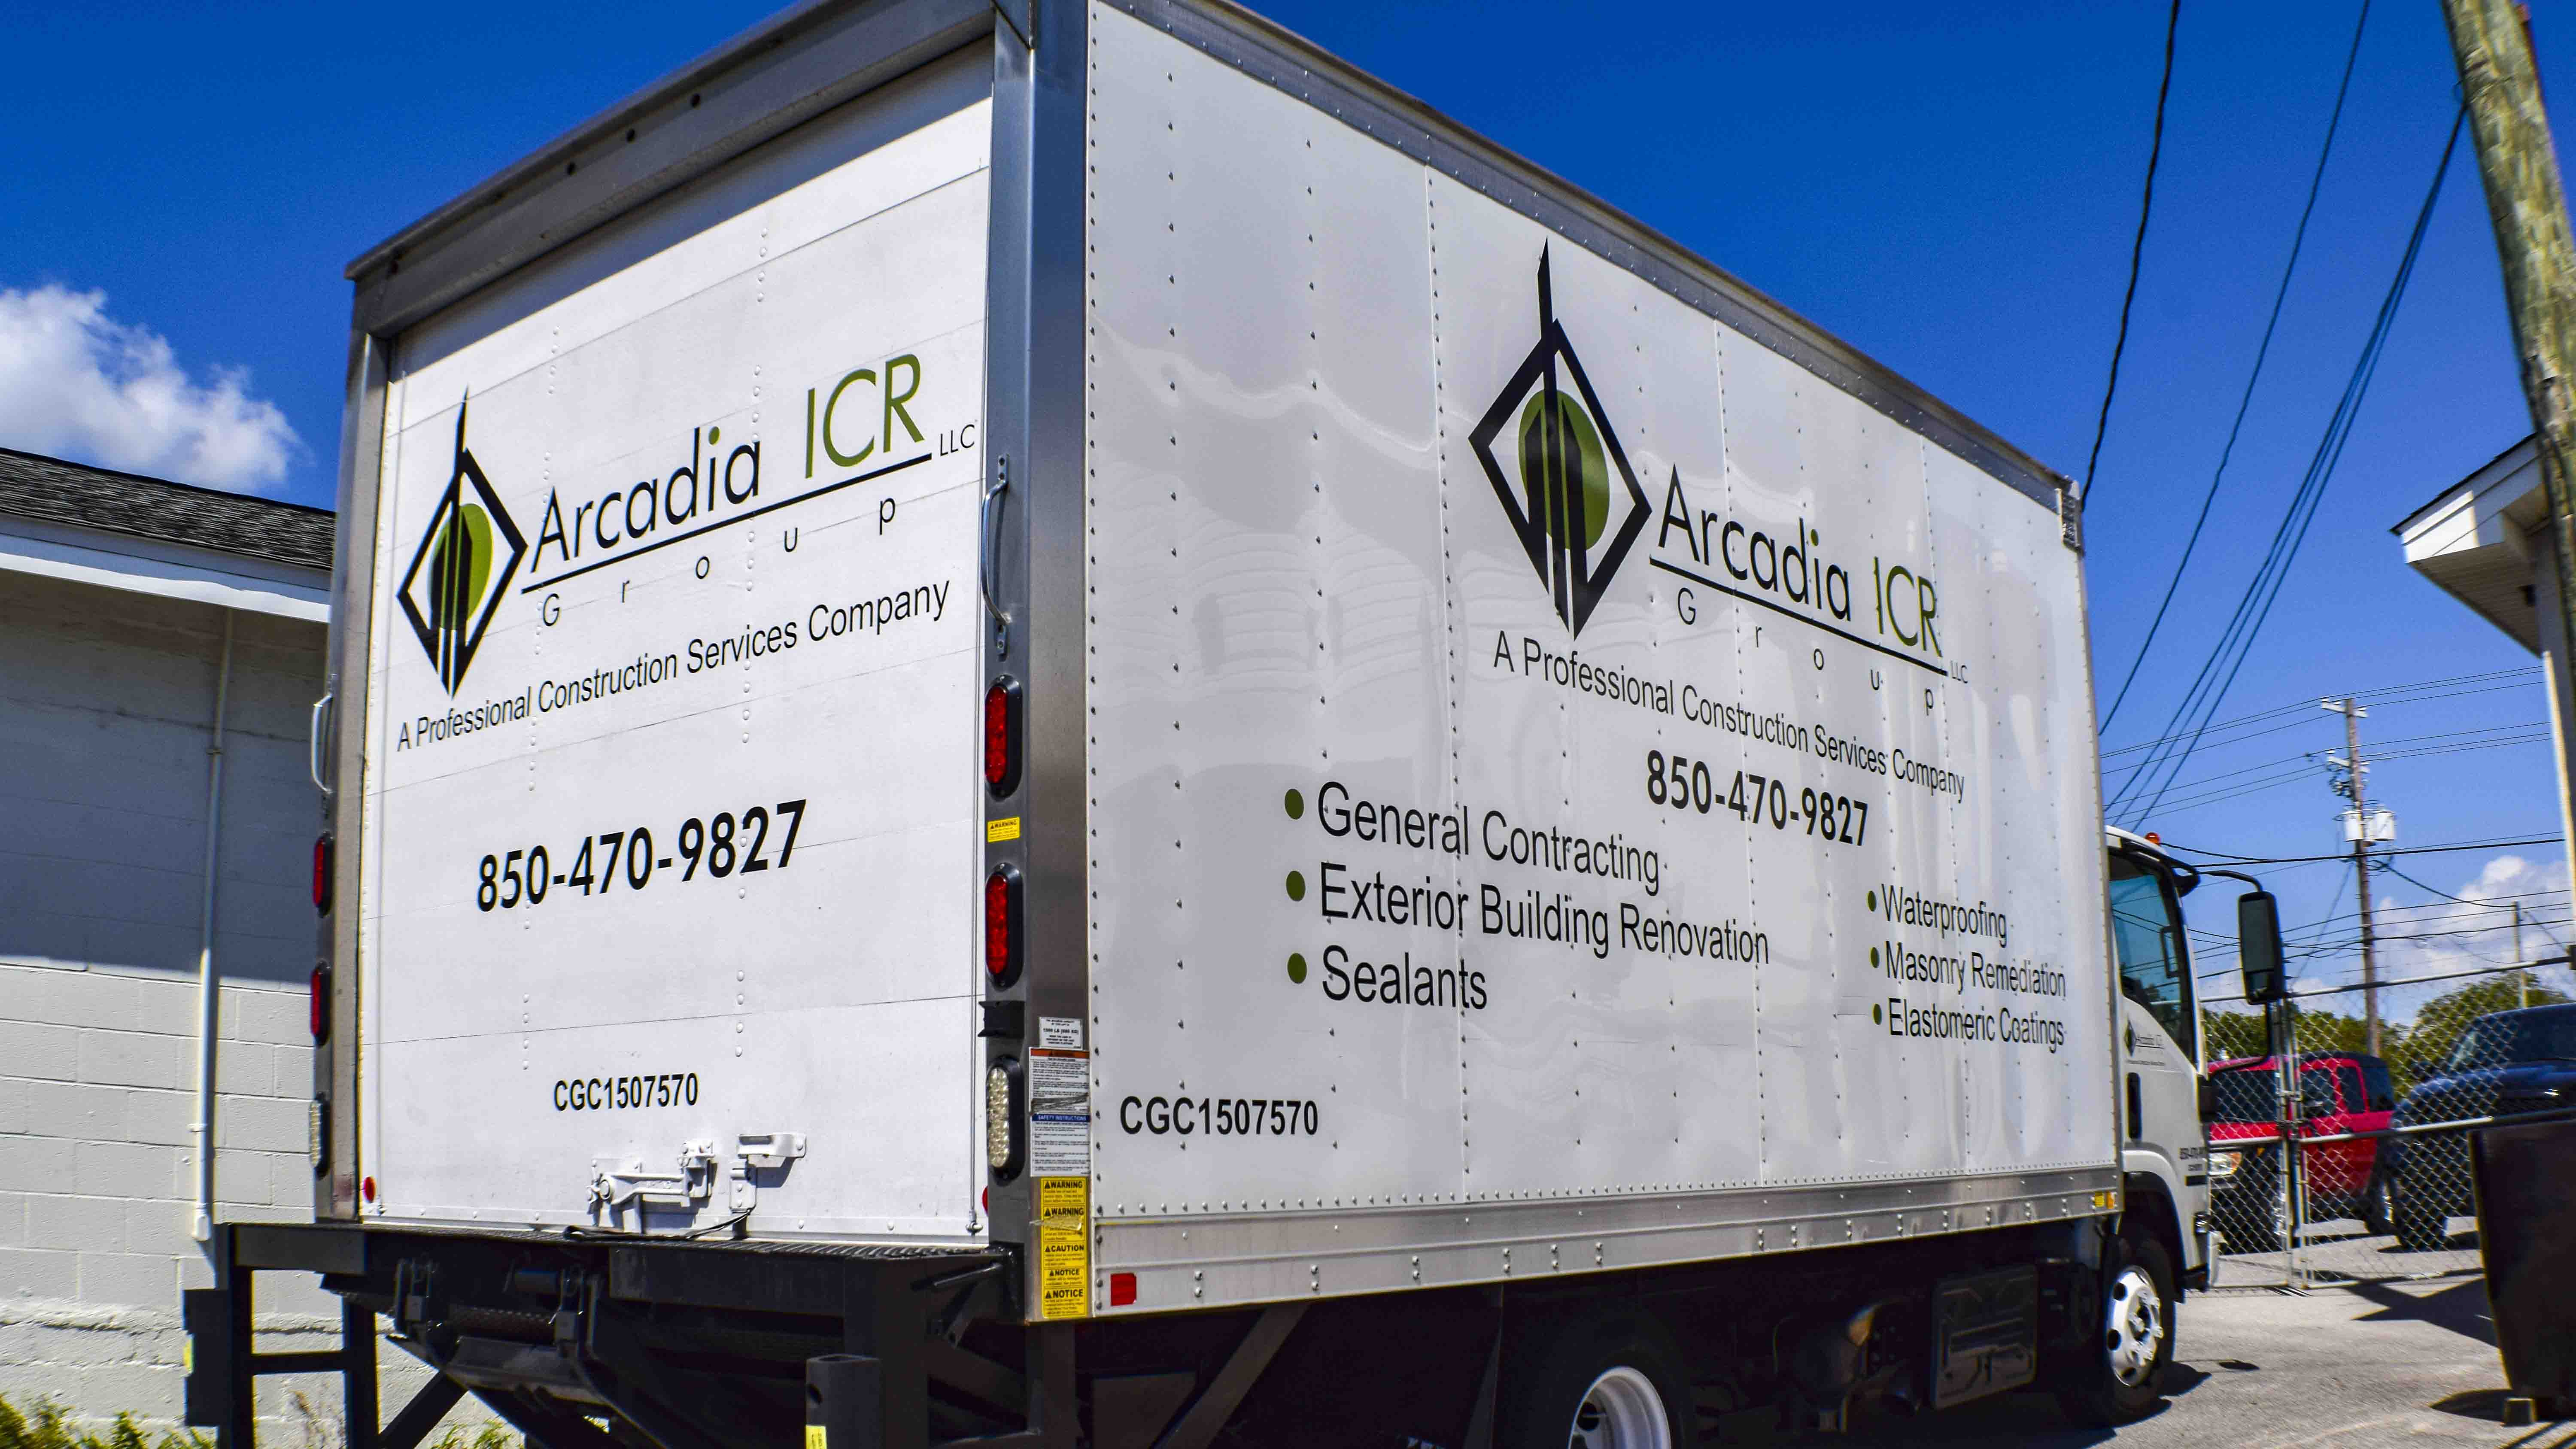 Pensacola Sign - Vehicle Graphics - Graphics for Arcadia ICR